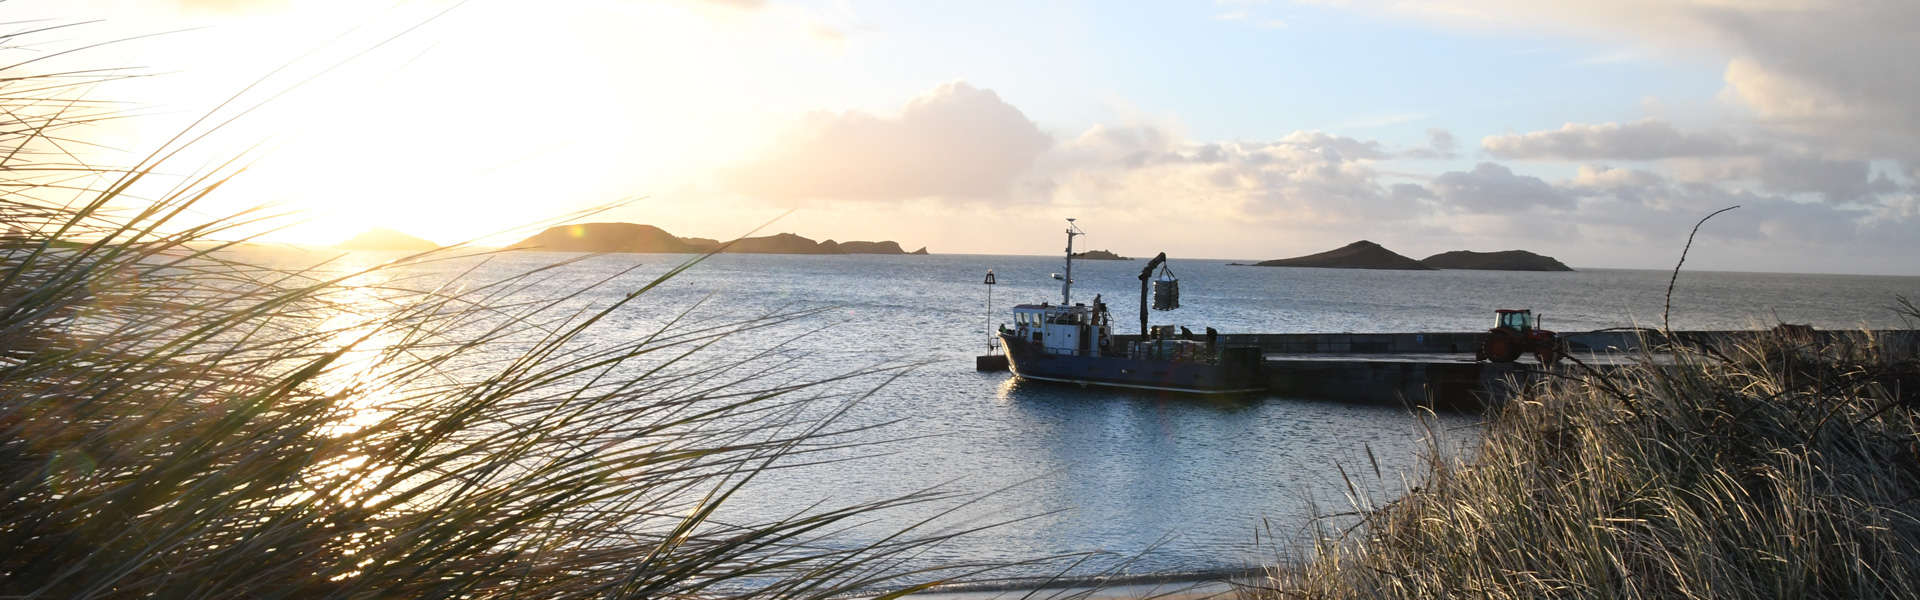 Freight Timetables - Isles of Scilly